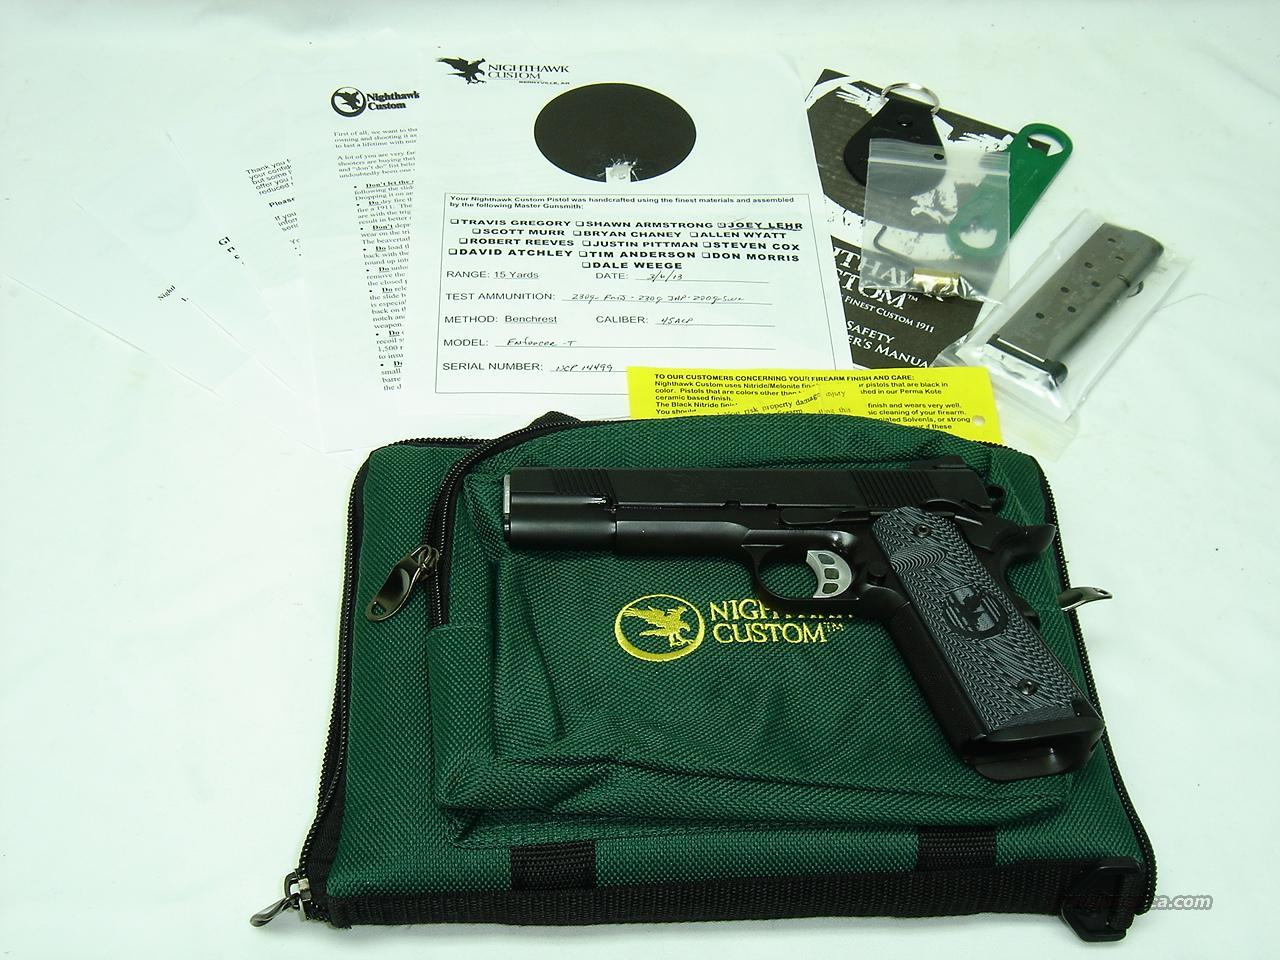 "Nighthawk Custom 1911 ENFORCER 45 ACP 5""  Guns > Pistols > Nighthawk Pistols"